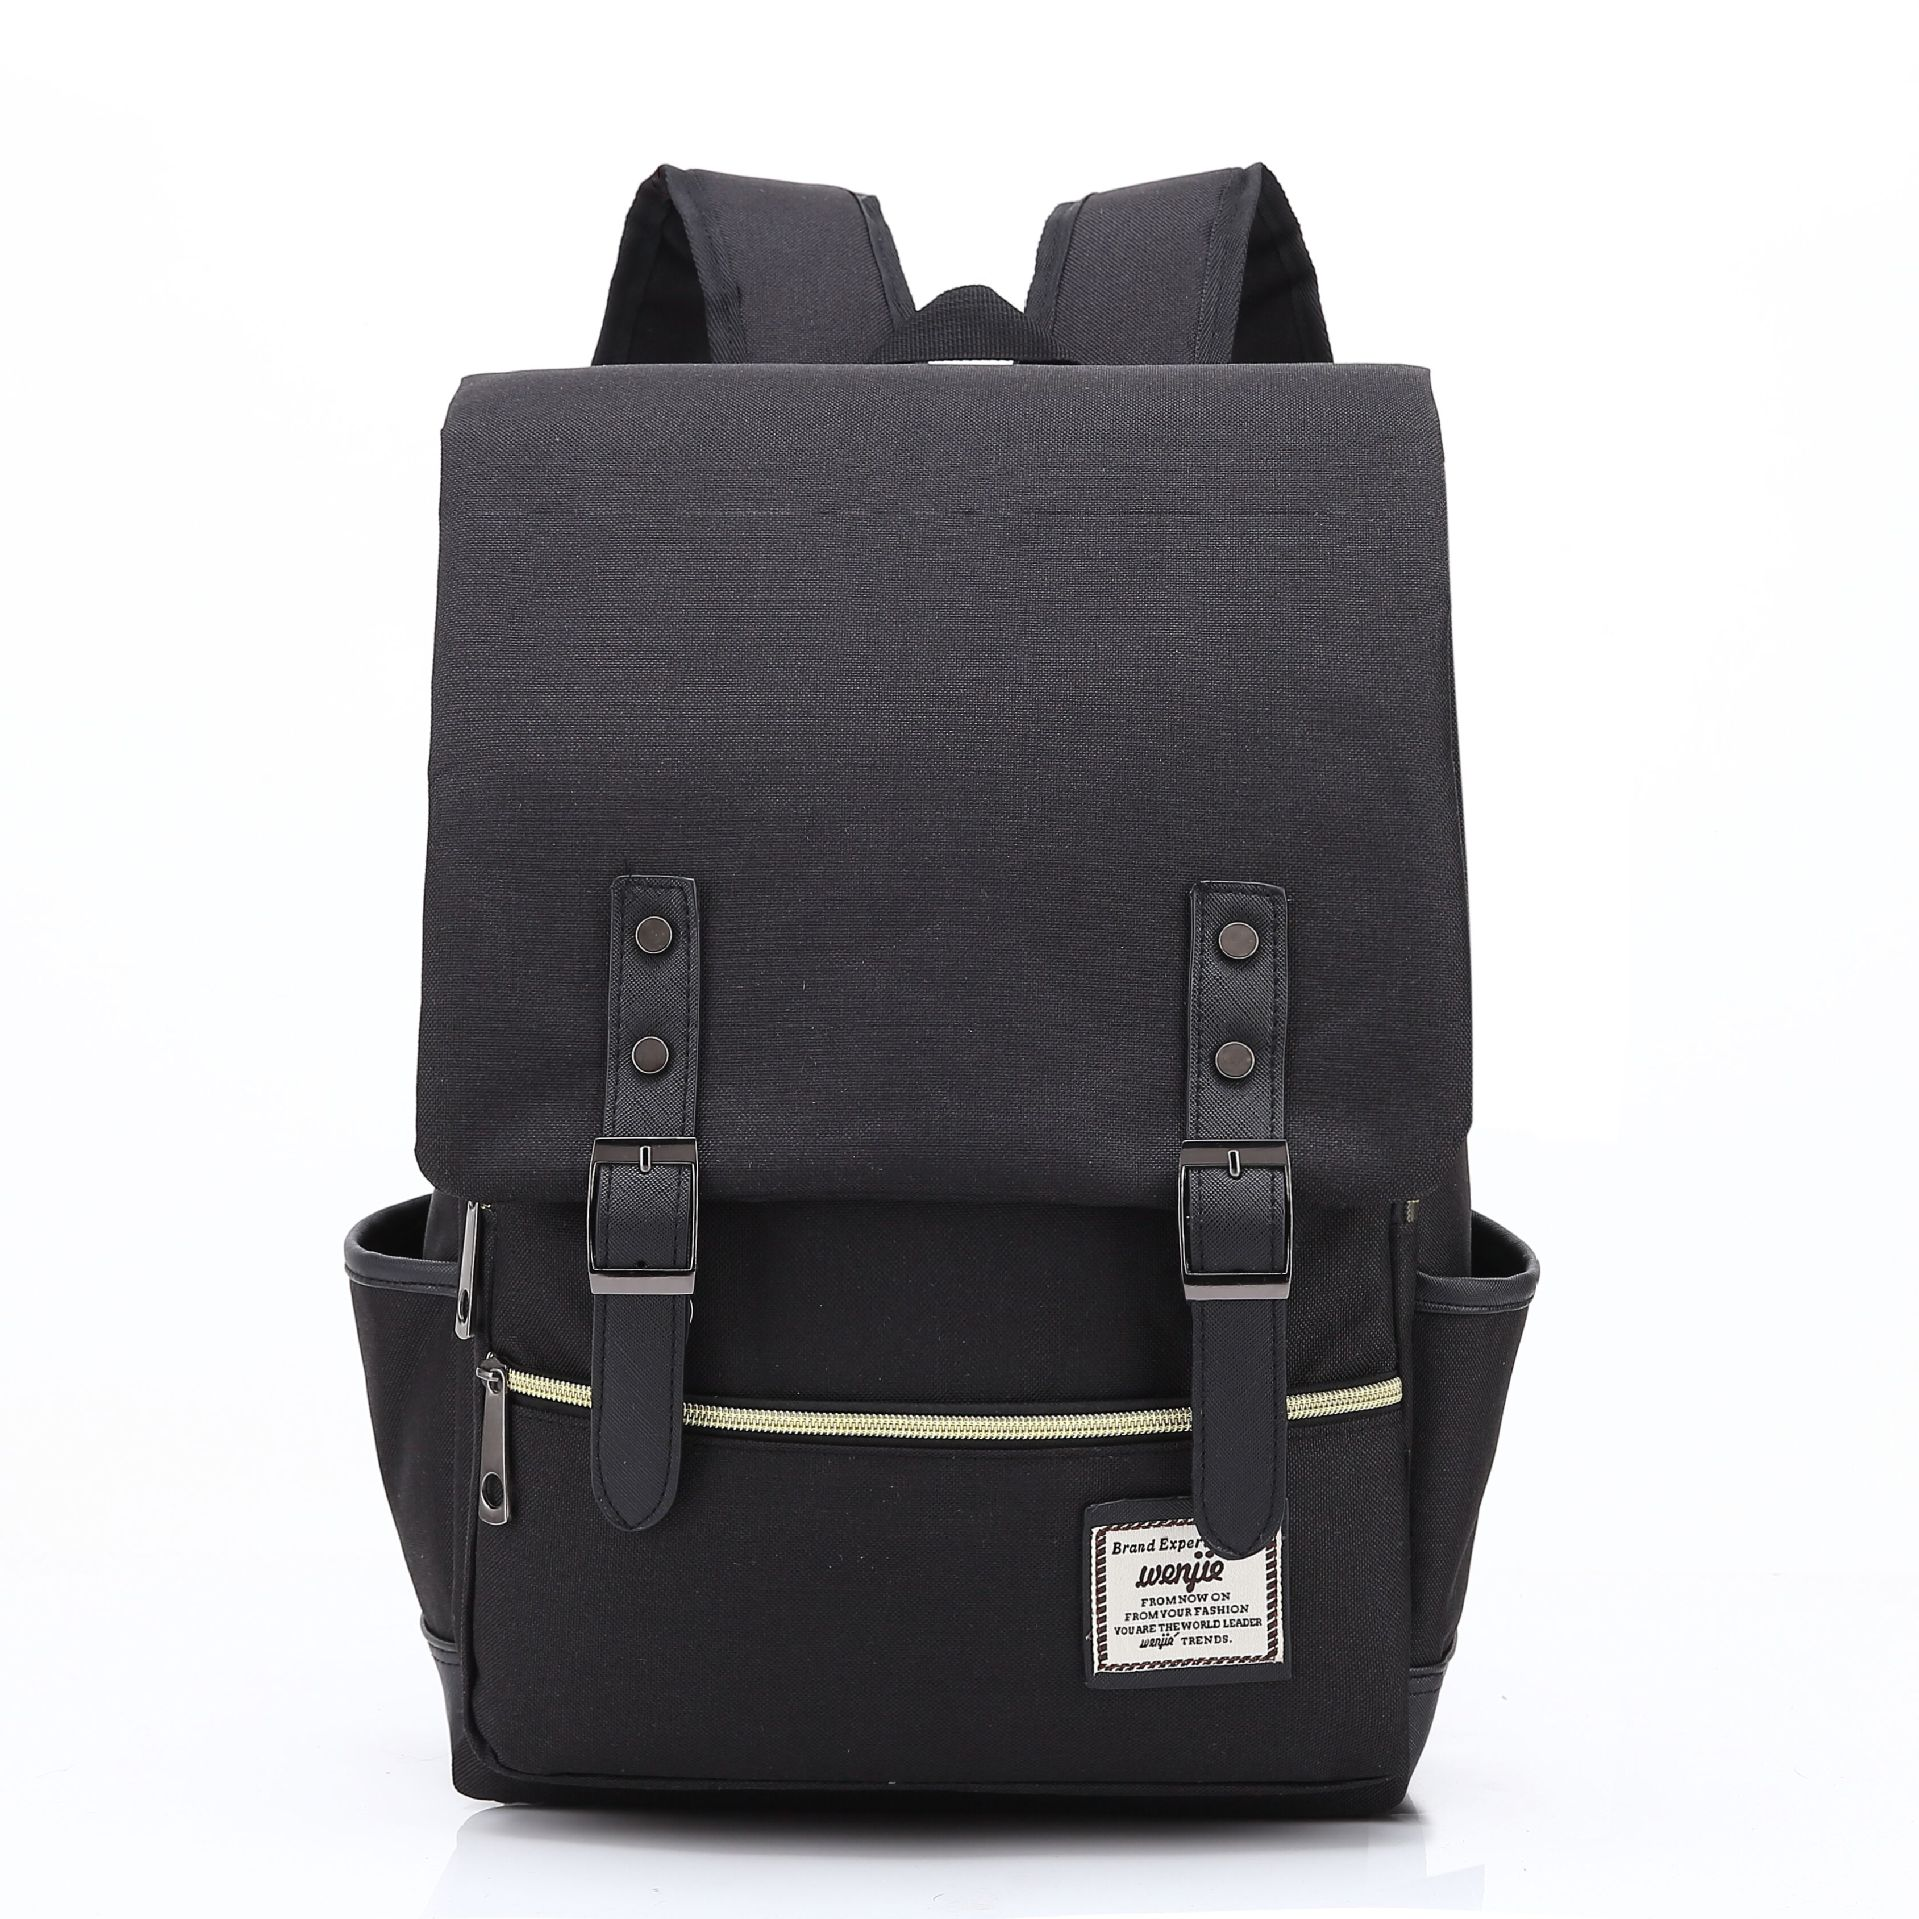 New Fashion Men Women Backpacks High Quality Canvas Unisex Student School Bag Female Male Computer Bag High Capacity Travel Bag